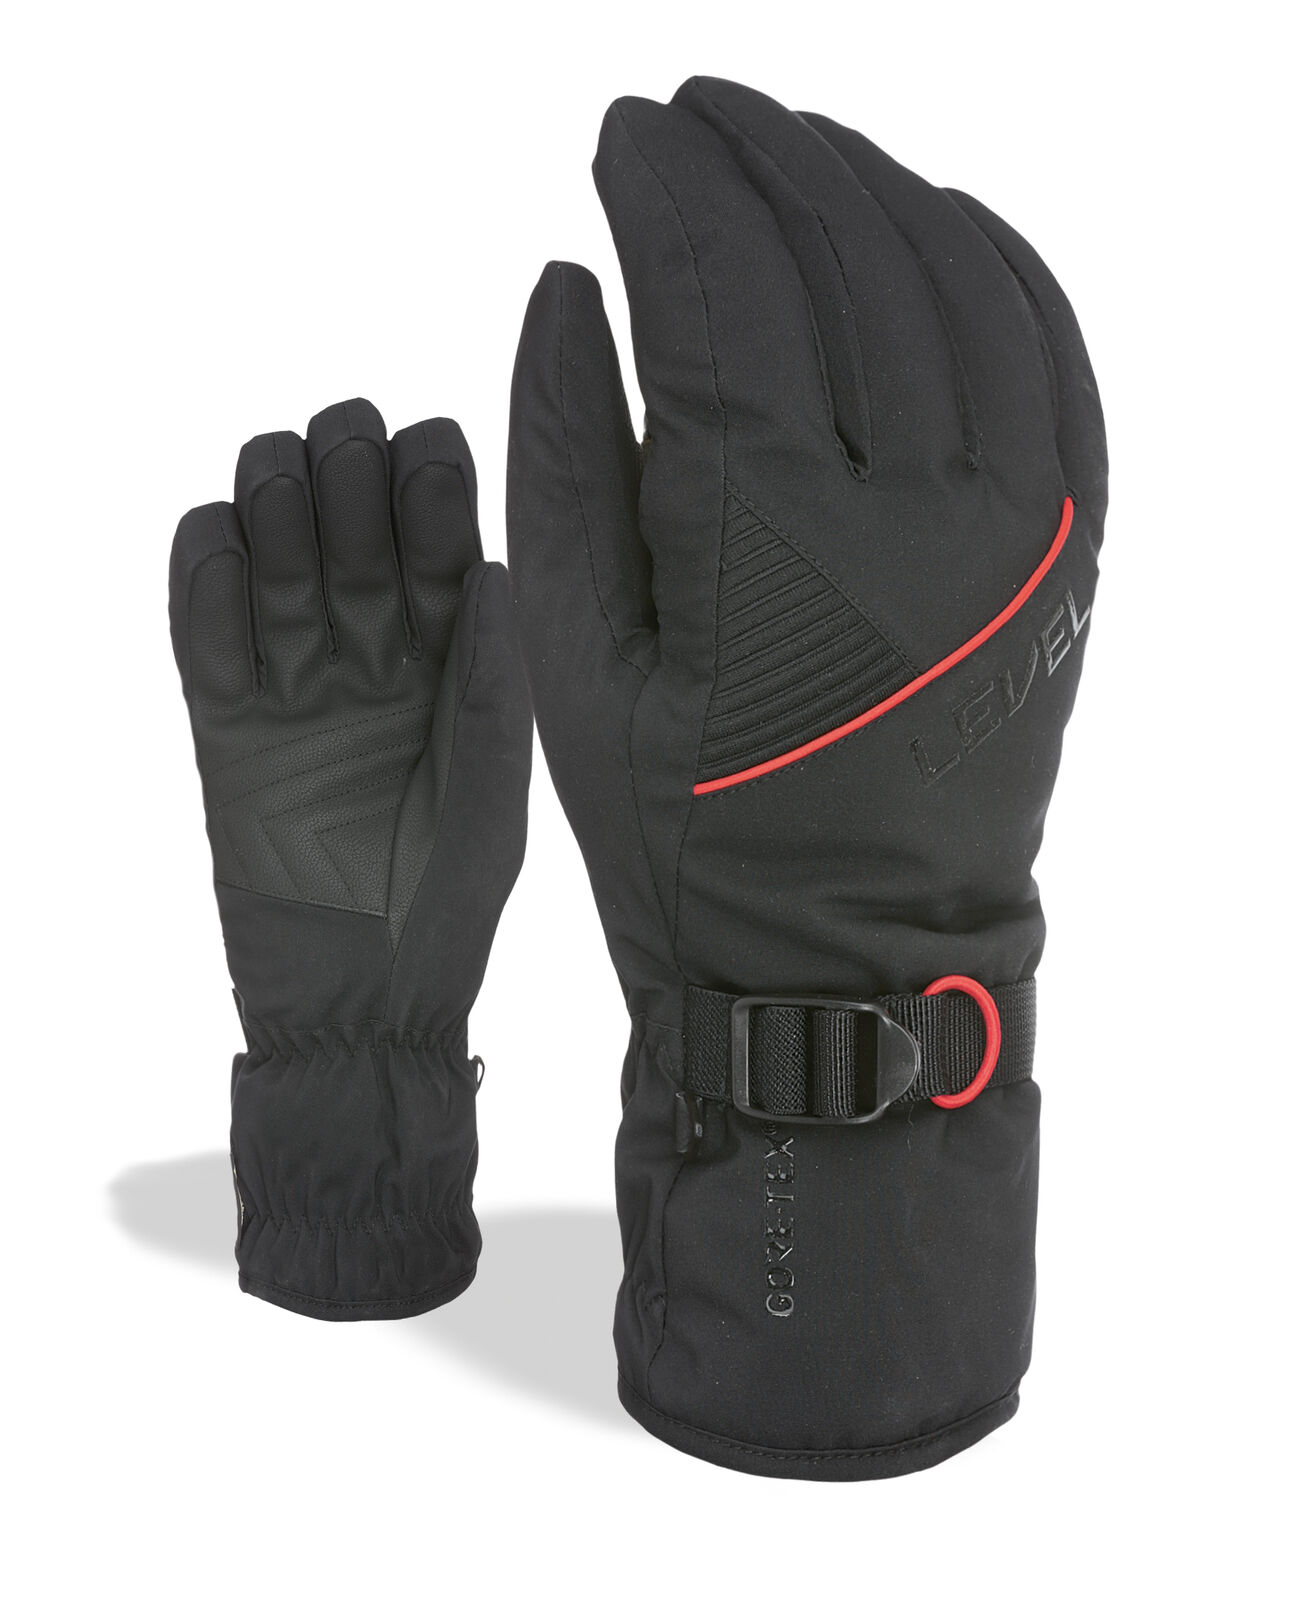 Level Guantes Trouper Gore-Tex black Resistente Al Viento Impermeable